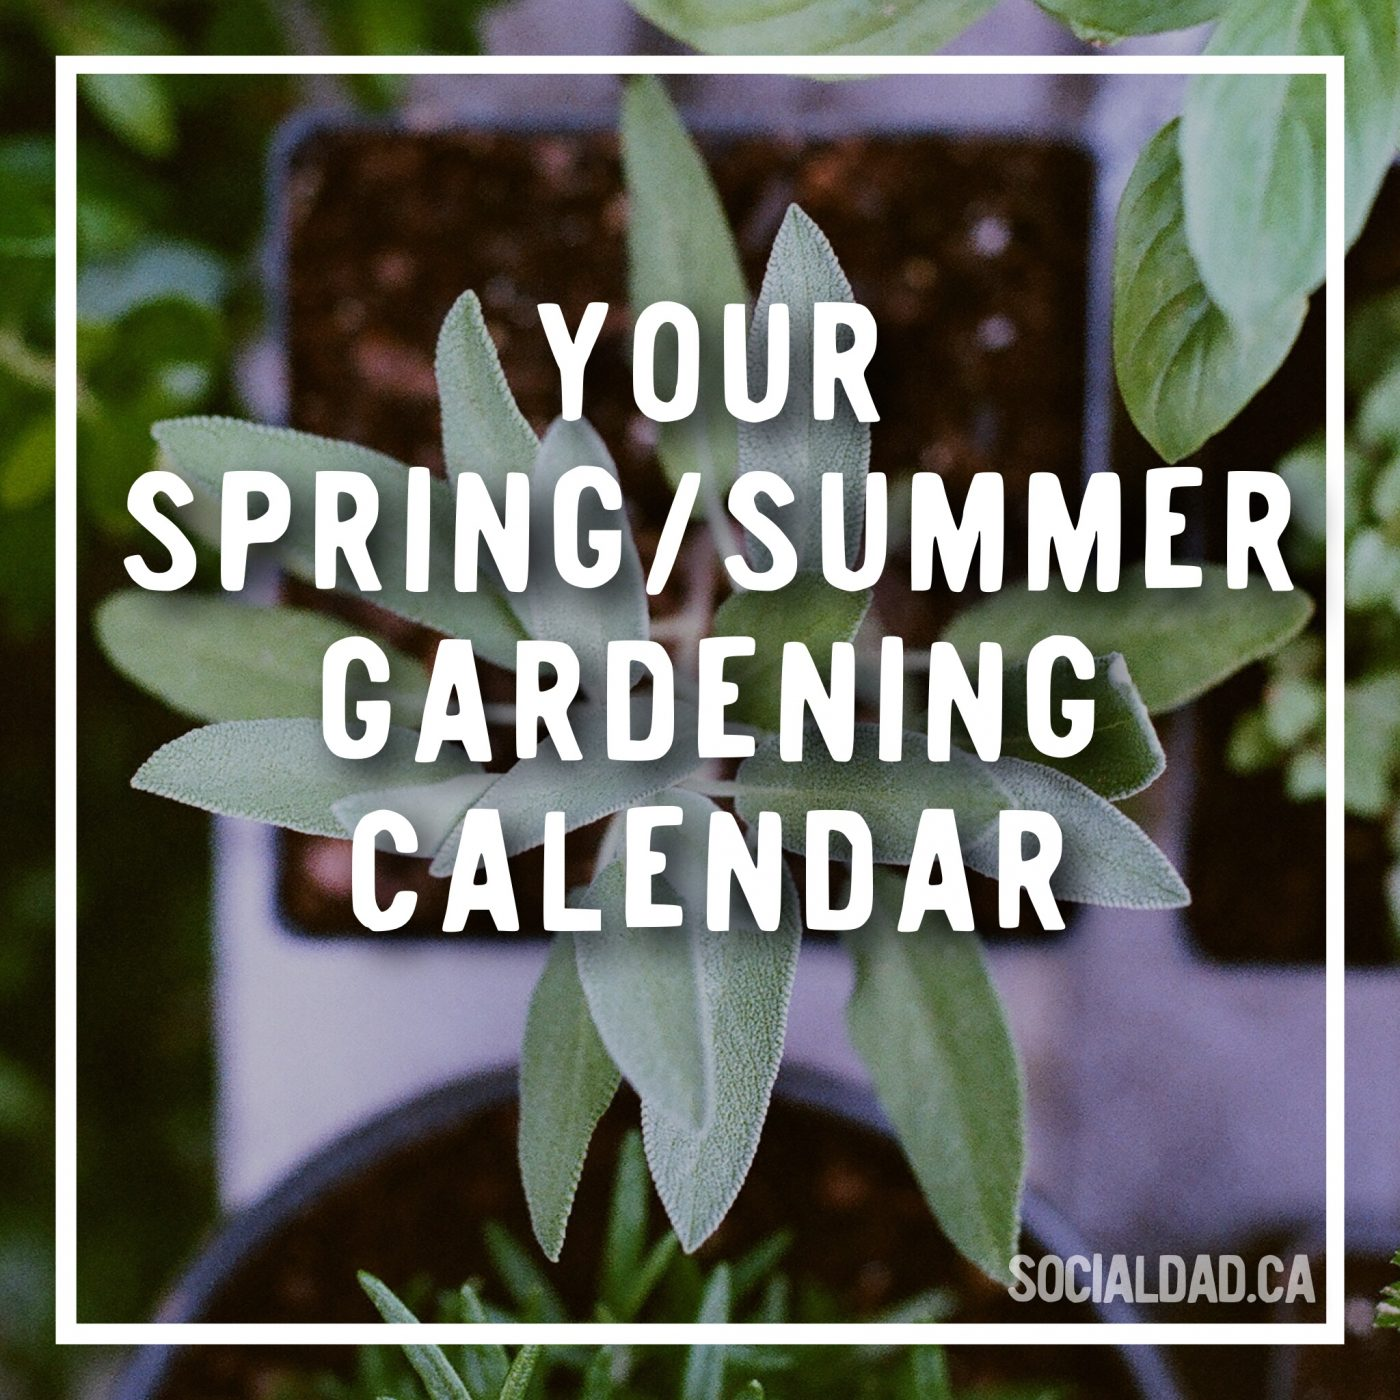 gardening calendar, when to plant vegetables, canadian dad, dad blog, parenting blog, social dad, vancouver blog, fatherhood, gardening ideas, family gardening, vancouver blog, best vancouver blog